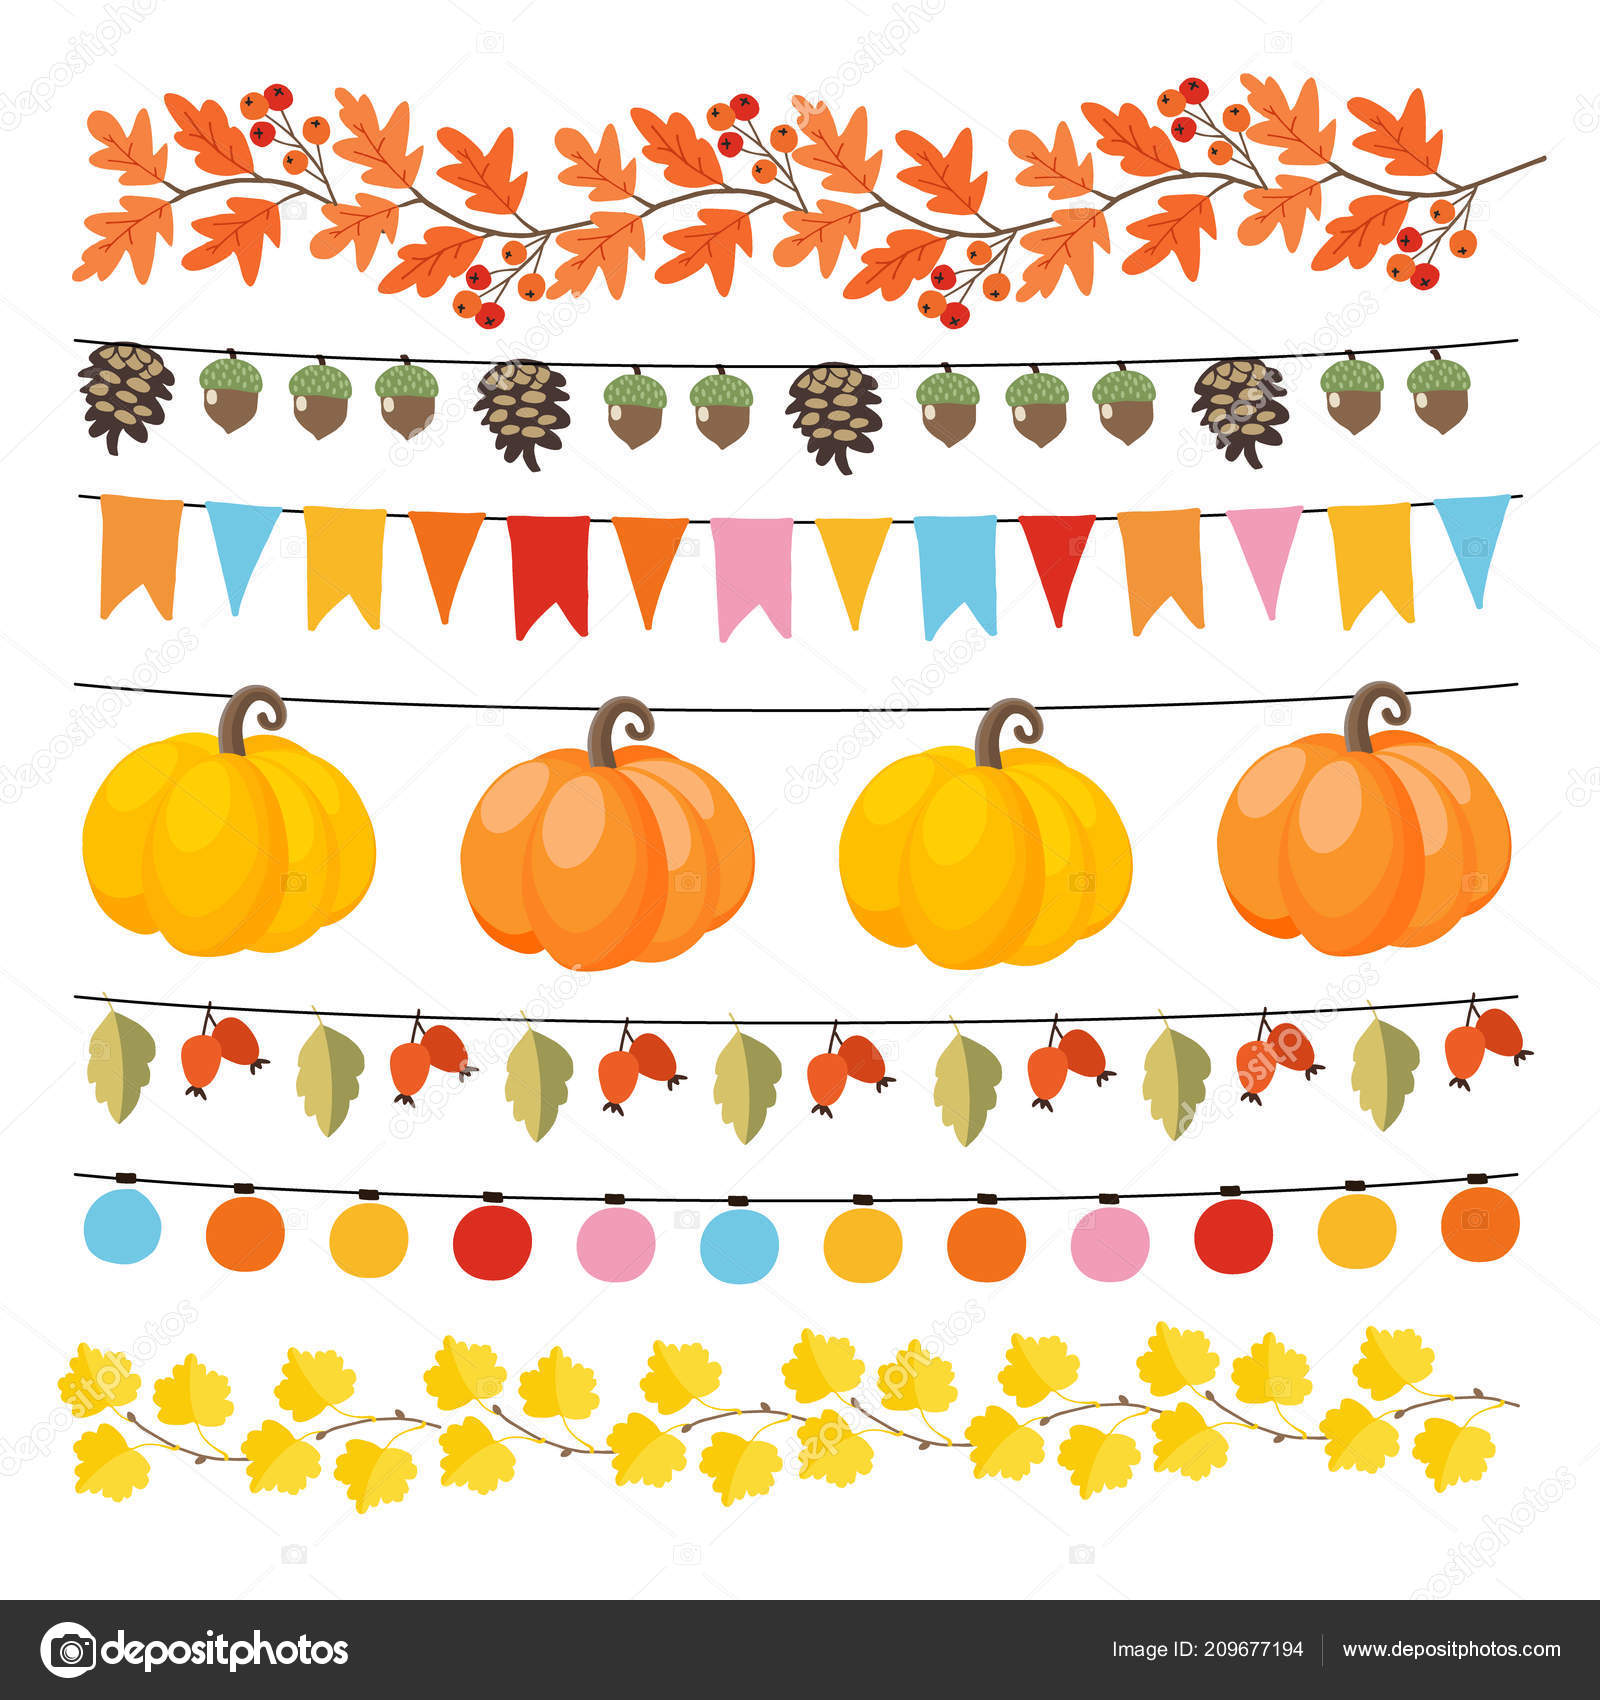 Fall Leaf Garland Clip Art Set Of Cute Autumn Fall Garlands With Lights Flags Acorns Leaves Pumpkins Pine Cones And Rose Hips Collection Of Thanksgiving Garden Party Decorations Isolated Vector Objects